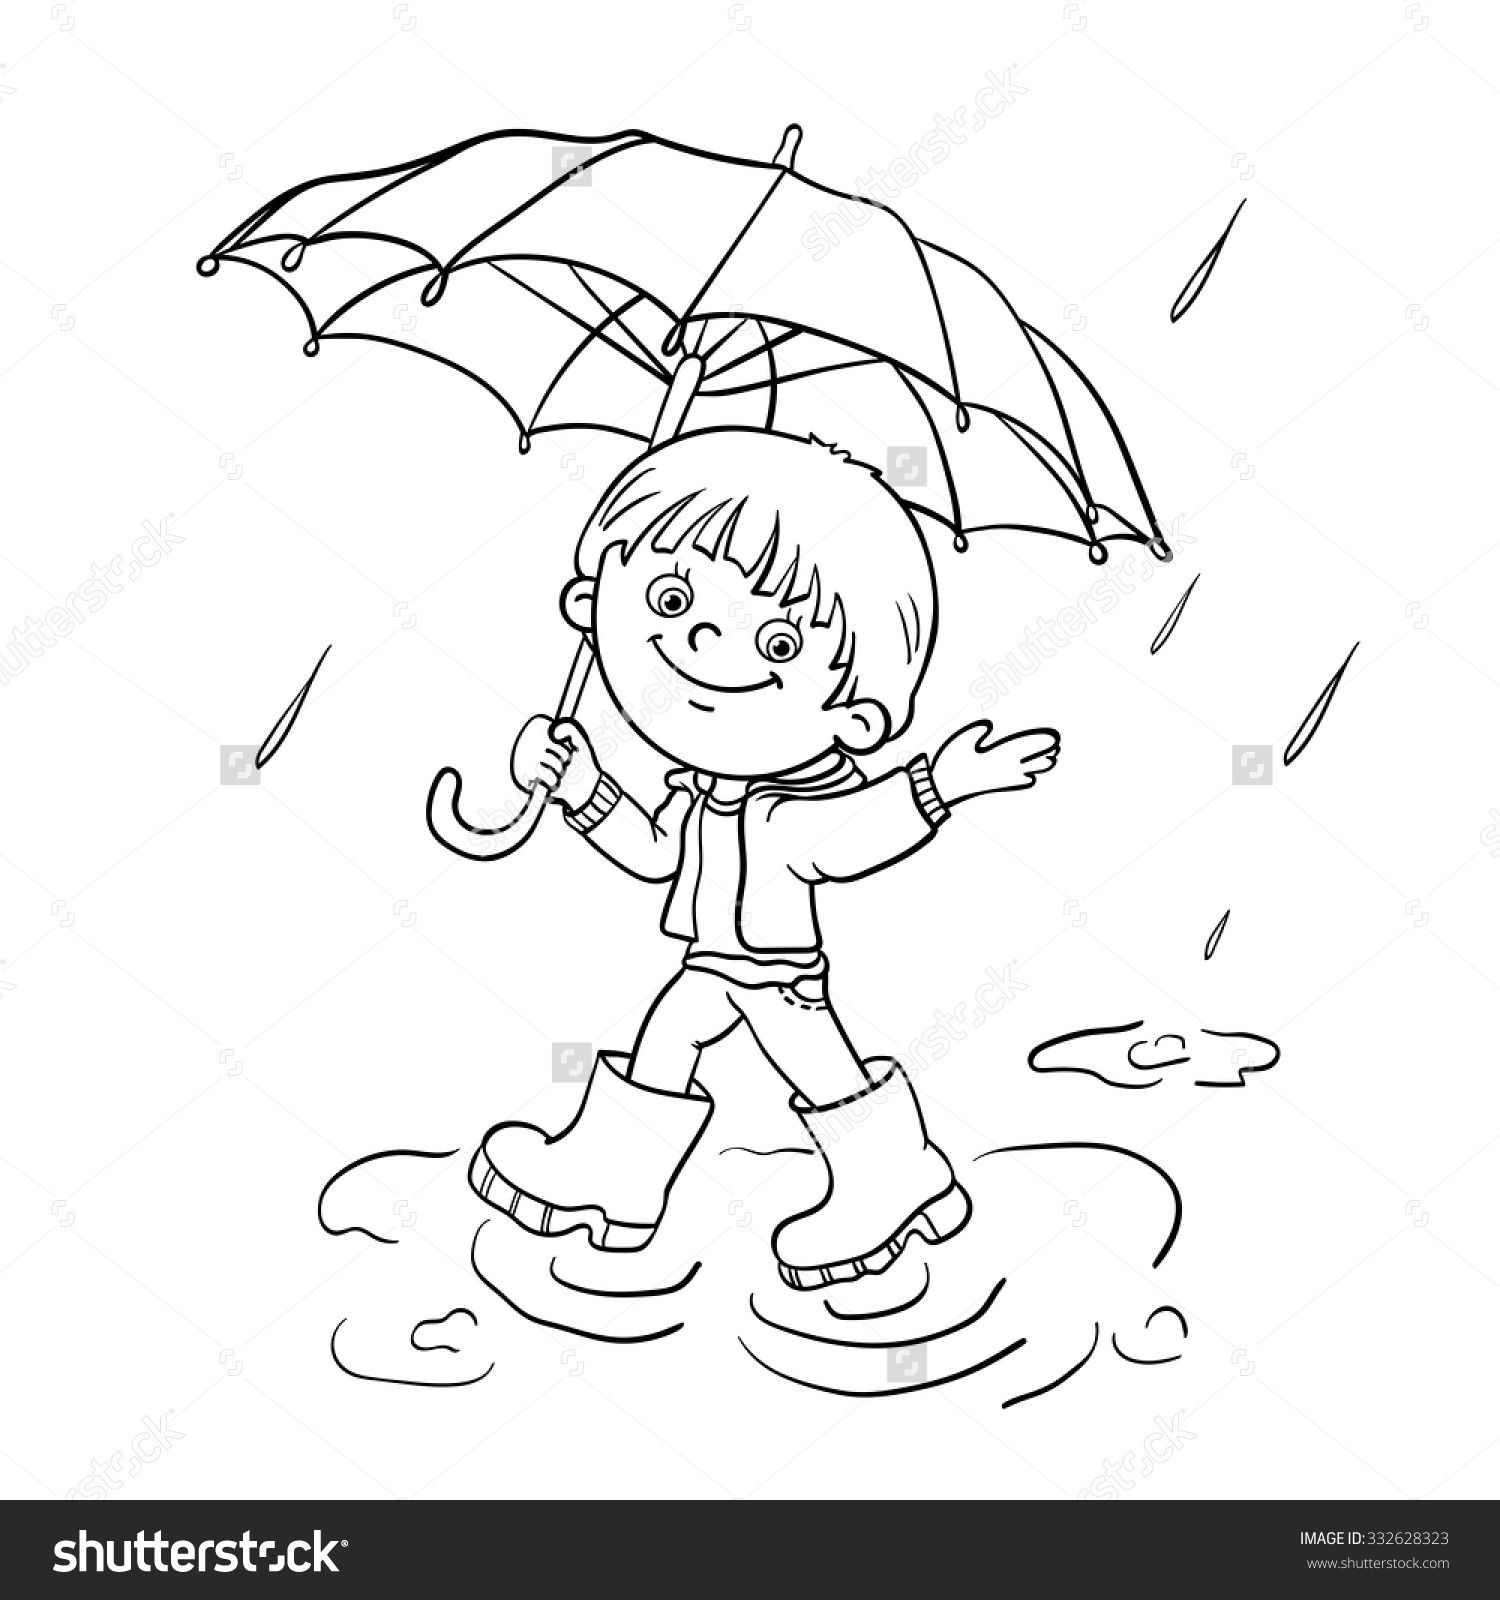 Playing In The Rain Coloring Pages